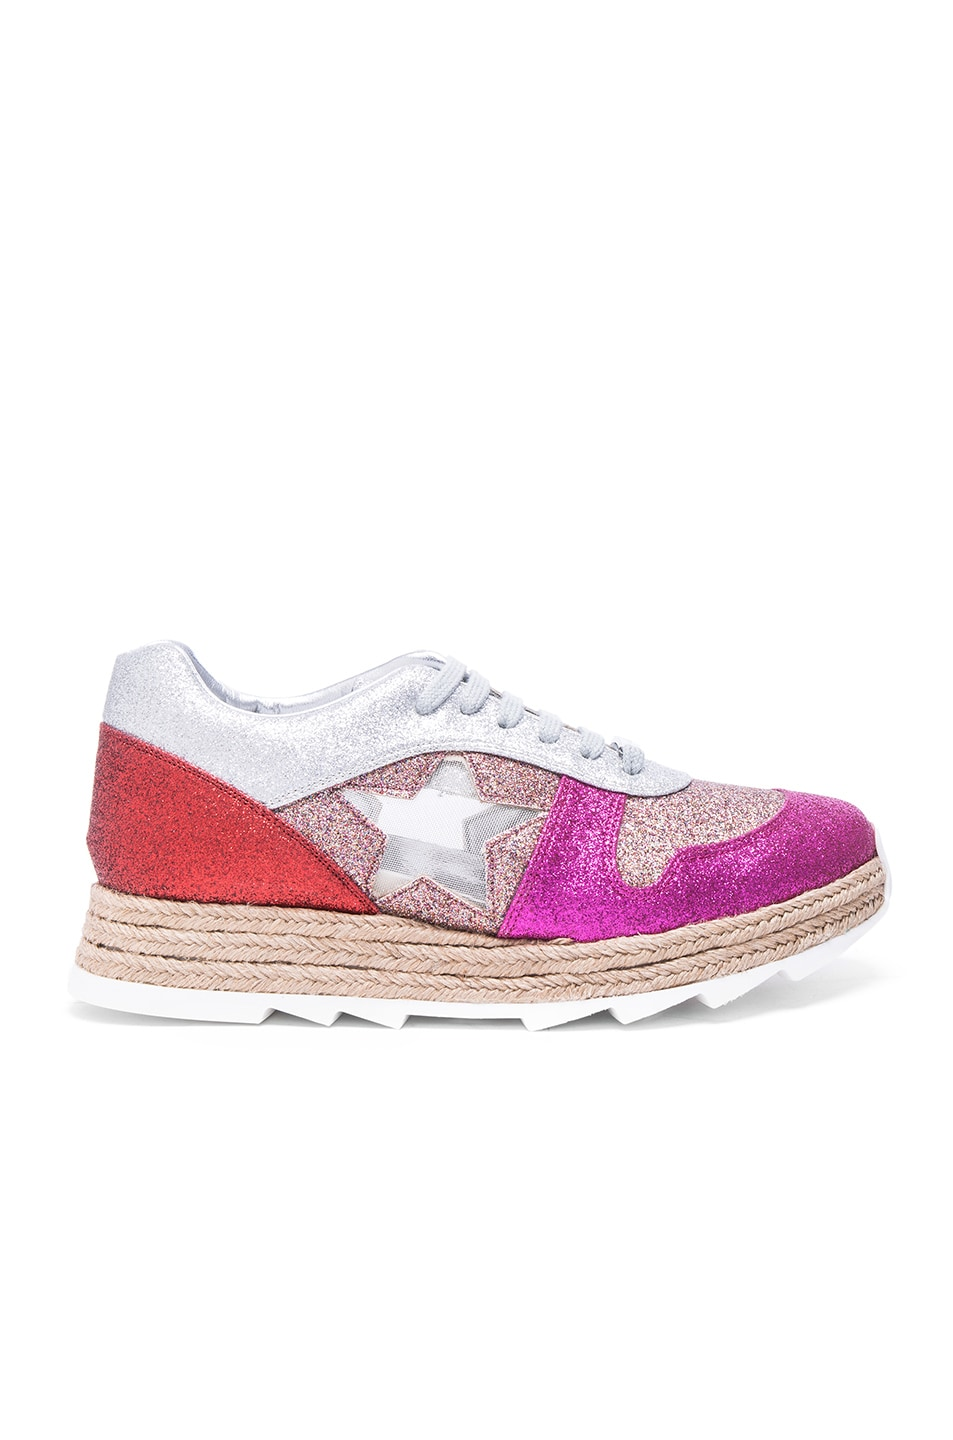 42c015649d32 Image 1 of Stella McCartney Macy Lace Up Sneakers in Multi